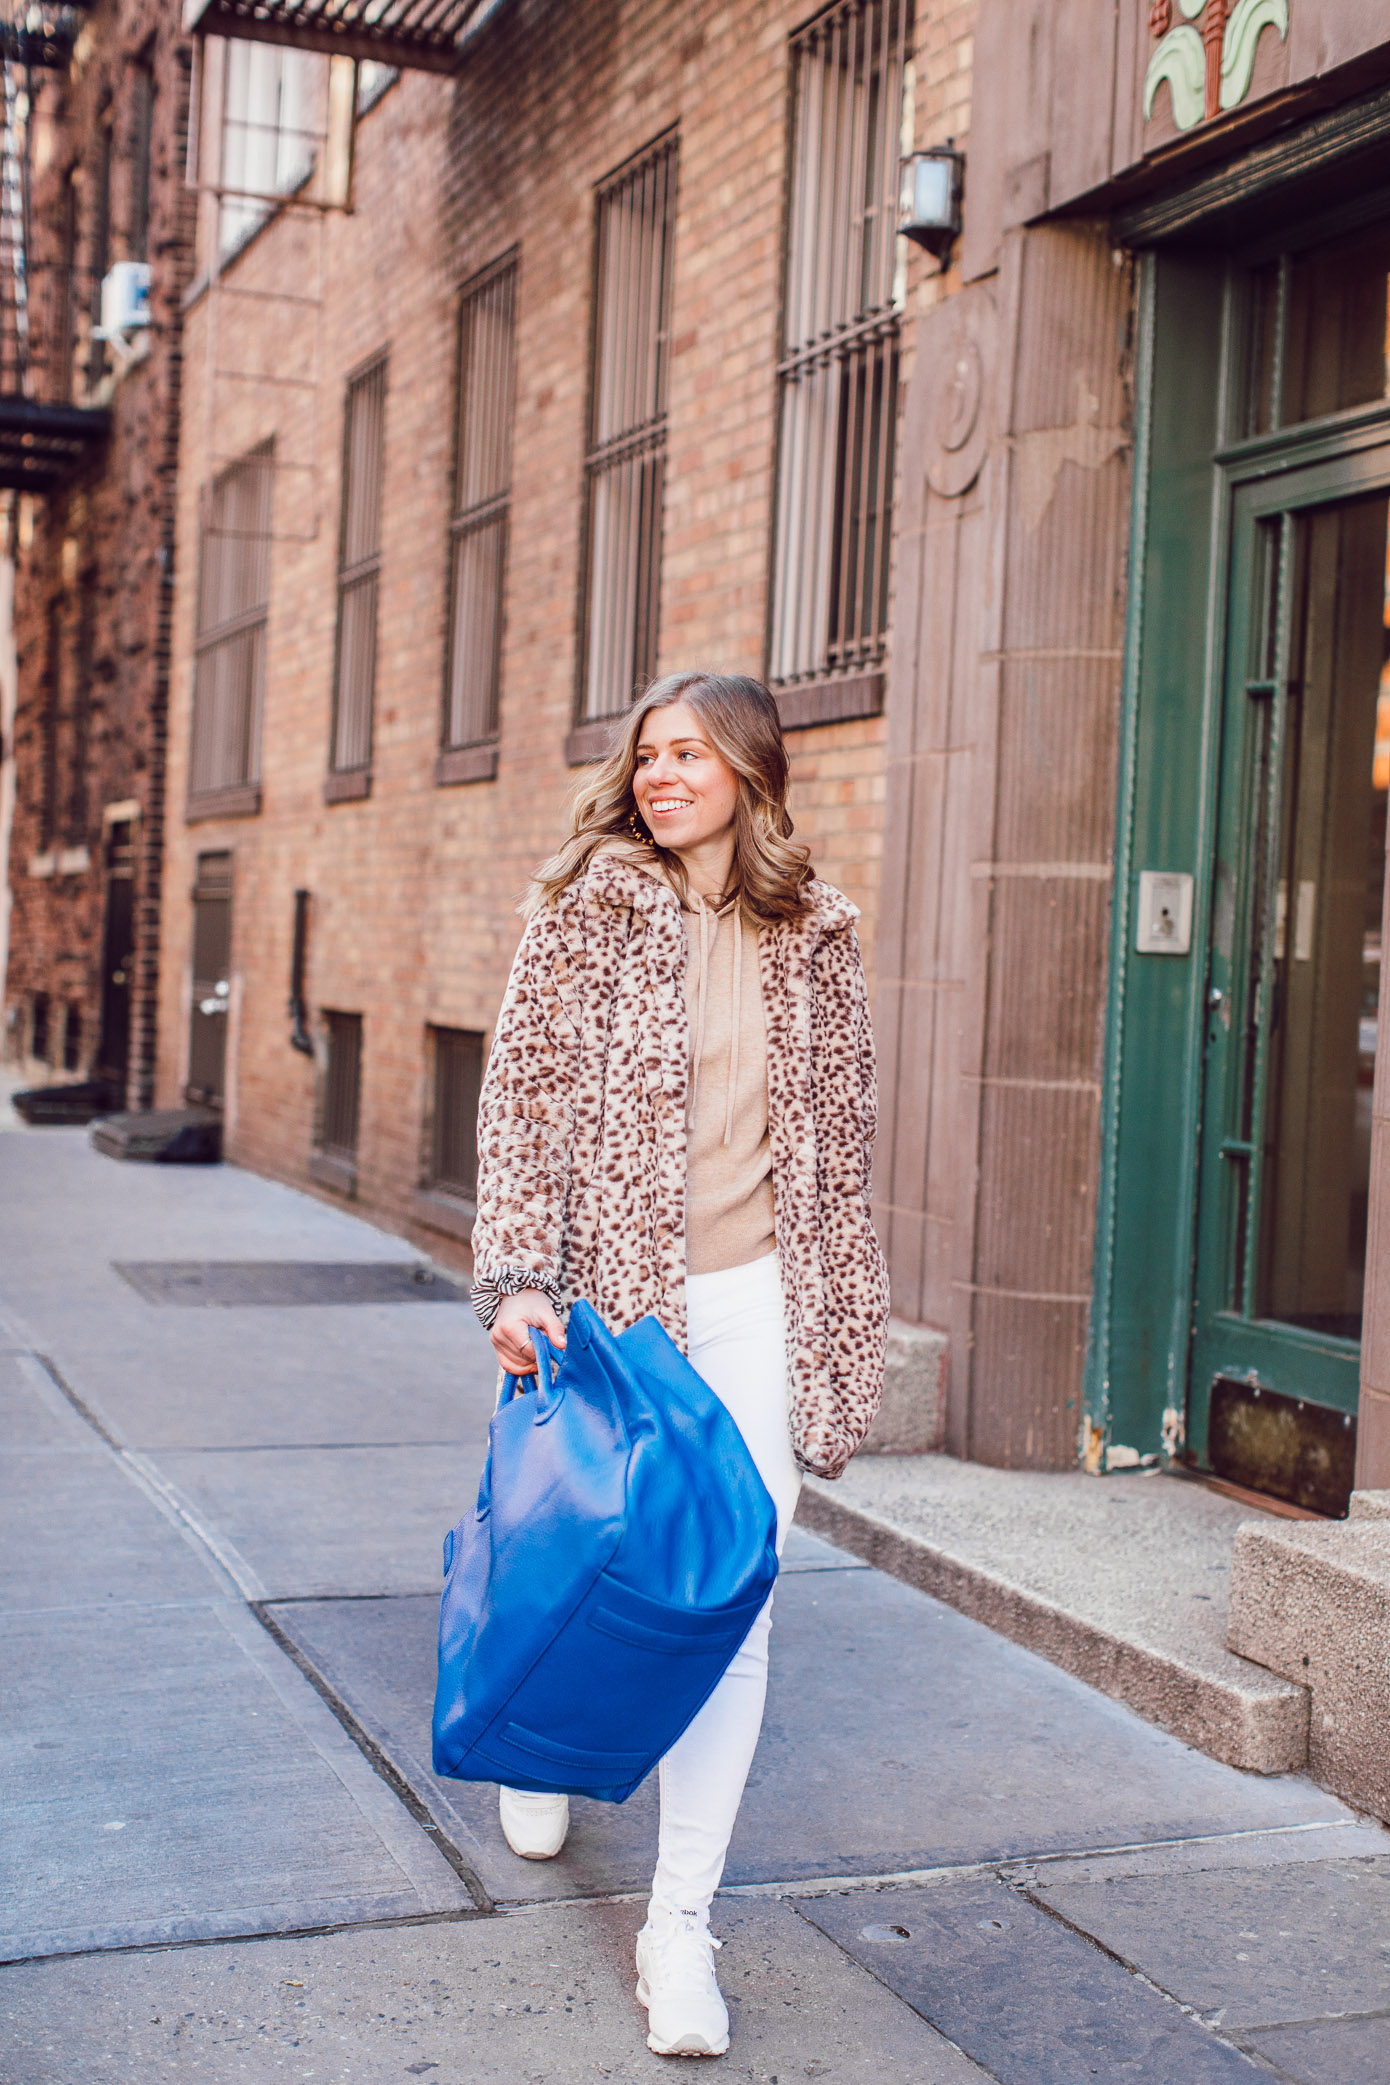 The BEST White Jeans to Transition into Spring | Casual Travel Style featured on Louella Reese